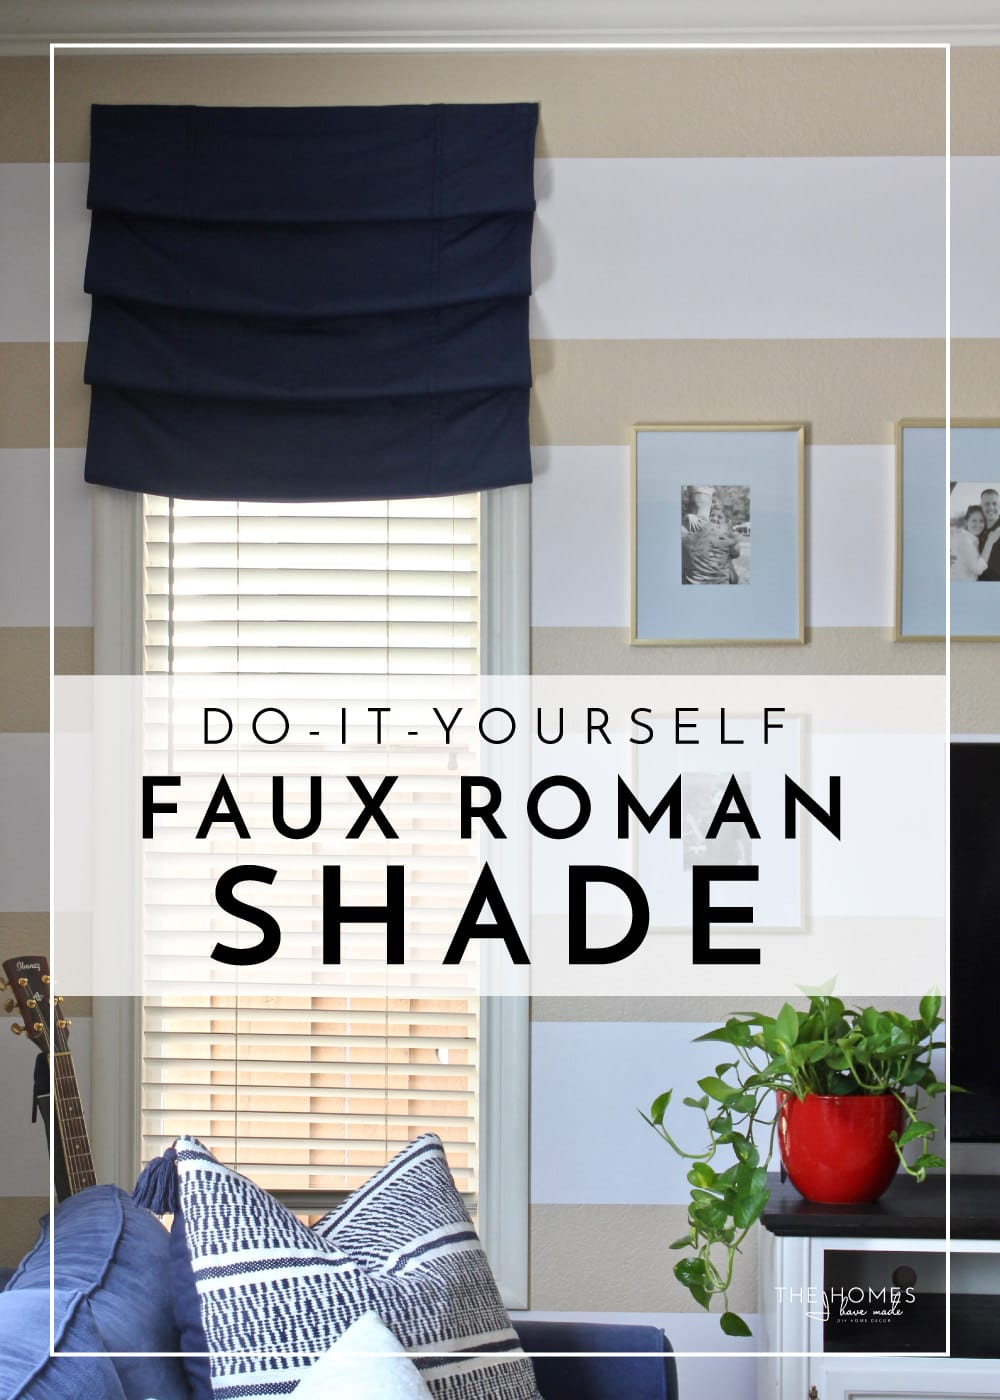 Diy Roman Shades Easy Diy Faux Roman Shades The Homes I Have Made